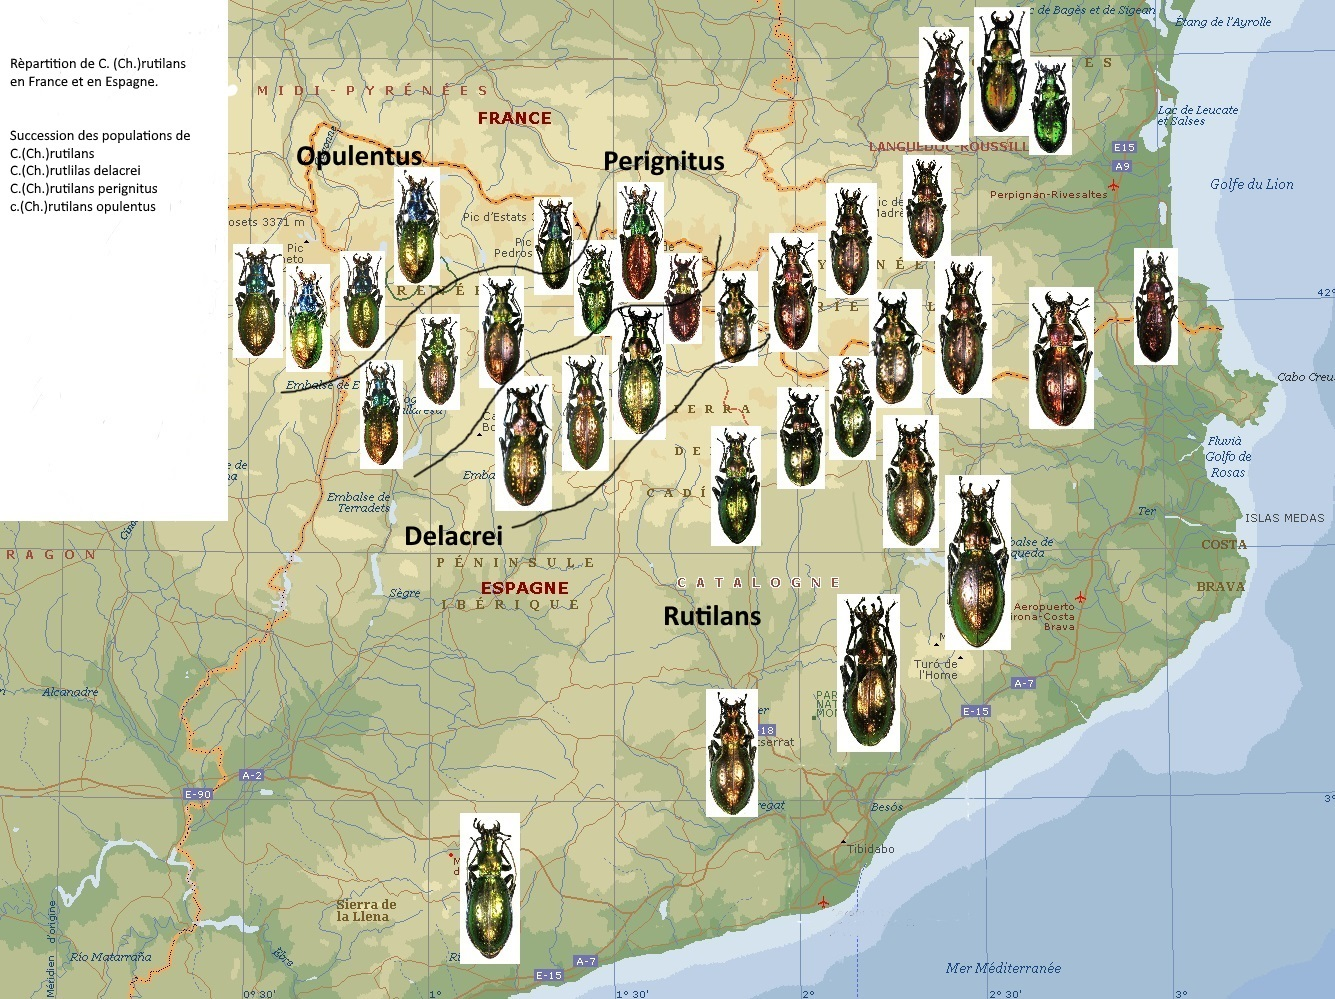 Distribution map of Carabus rutilans complex